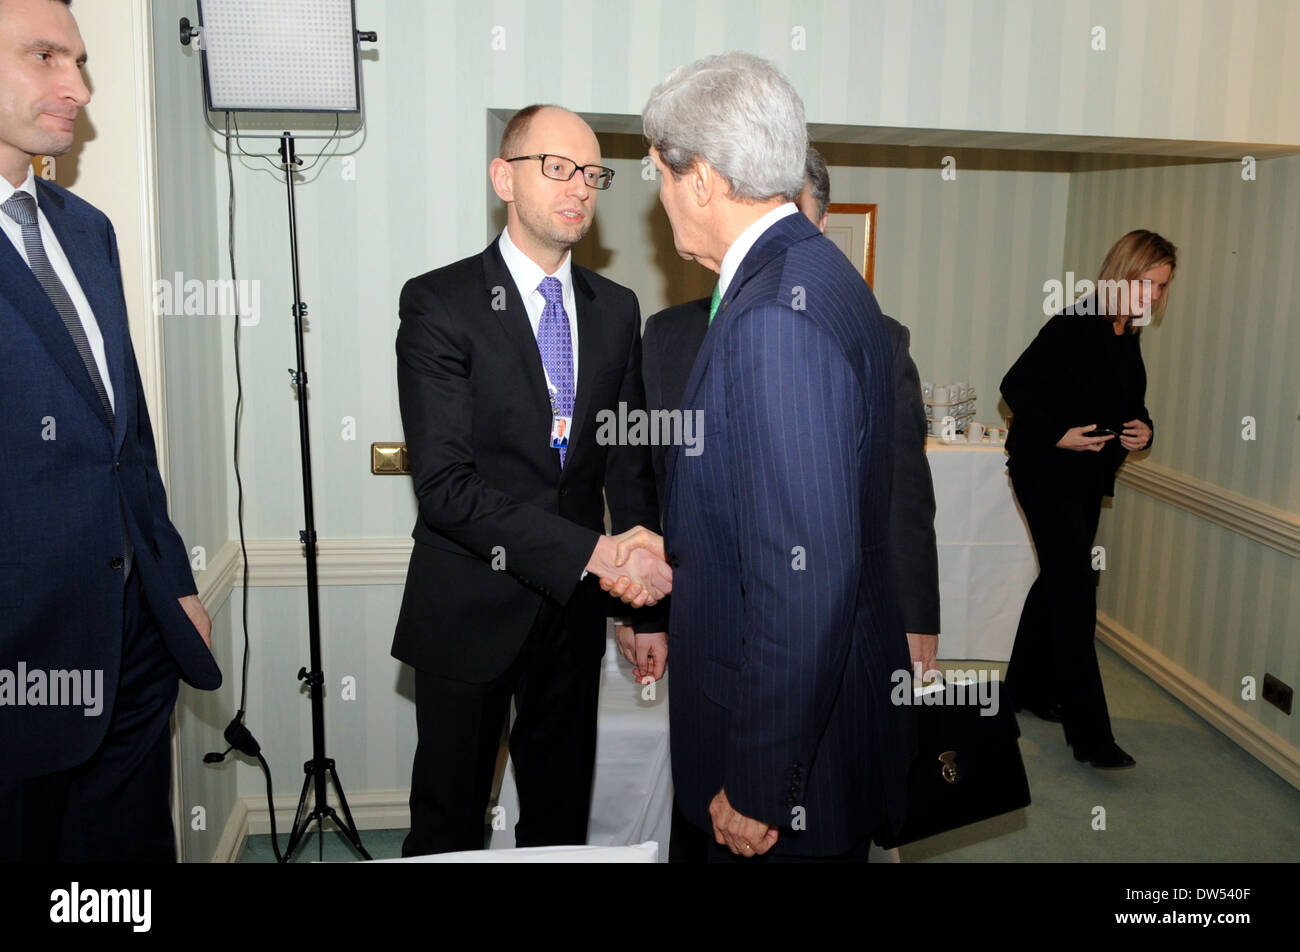 Secretary Kerry Meets Fatherland Party's Yatsenyuk Before Session with Ukranian Opposition Leaders - Stock Image